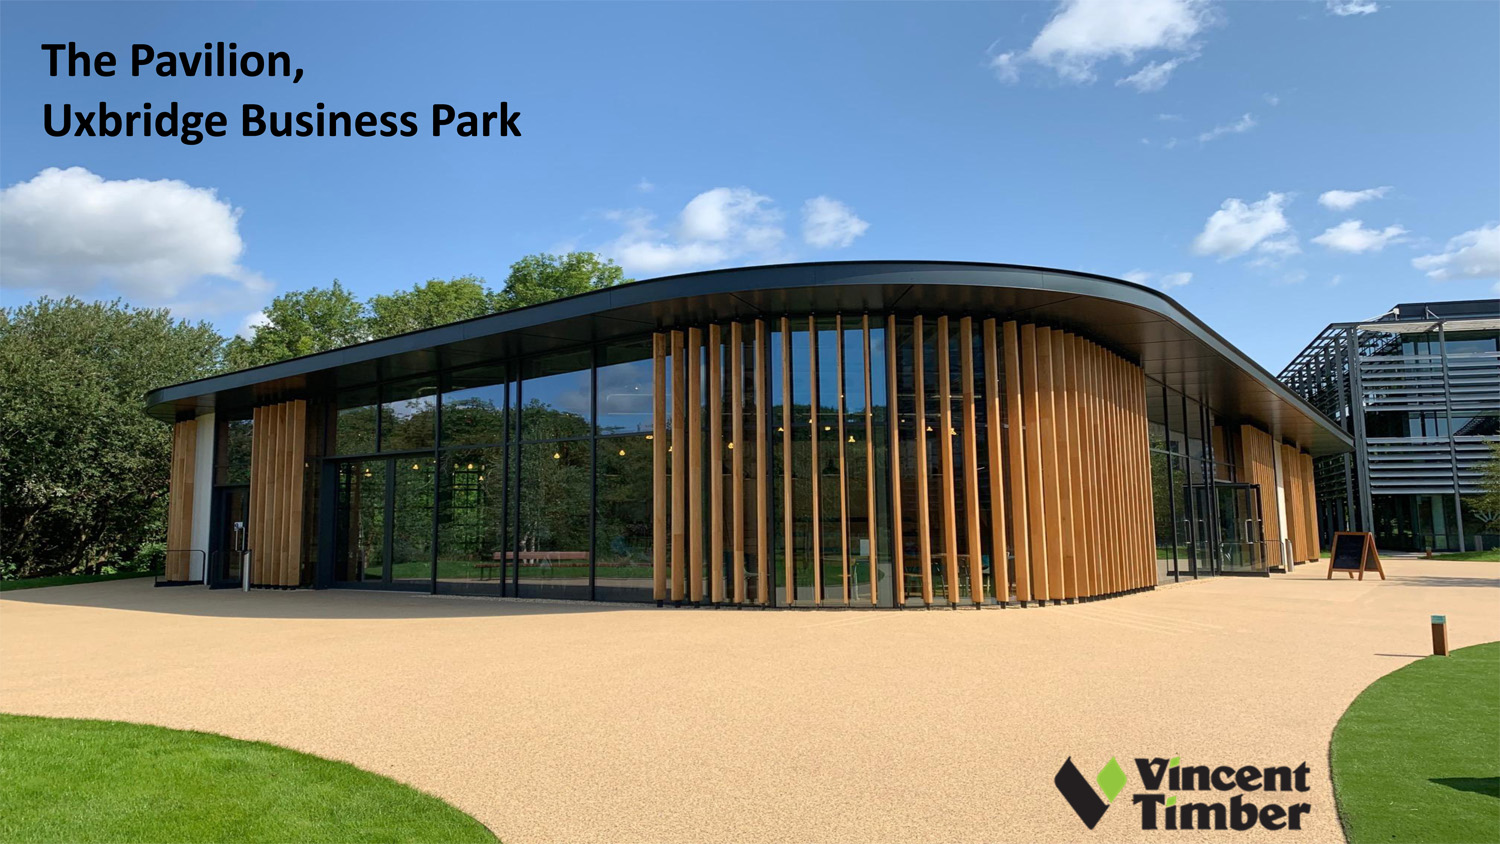 The Pavilion, Uxbridge Business Park